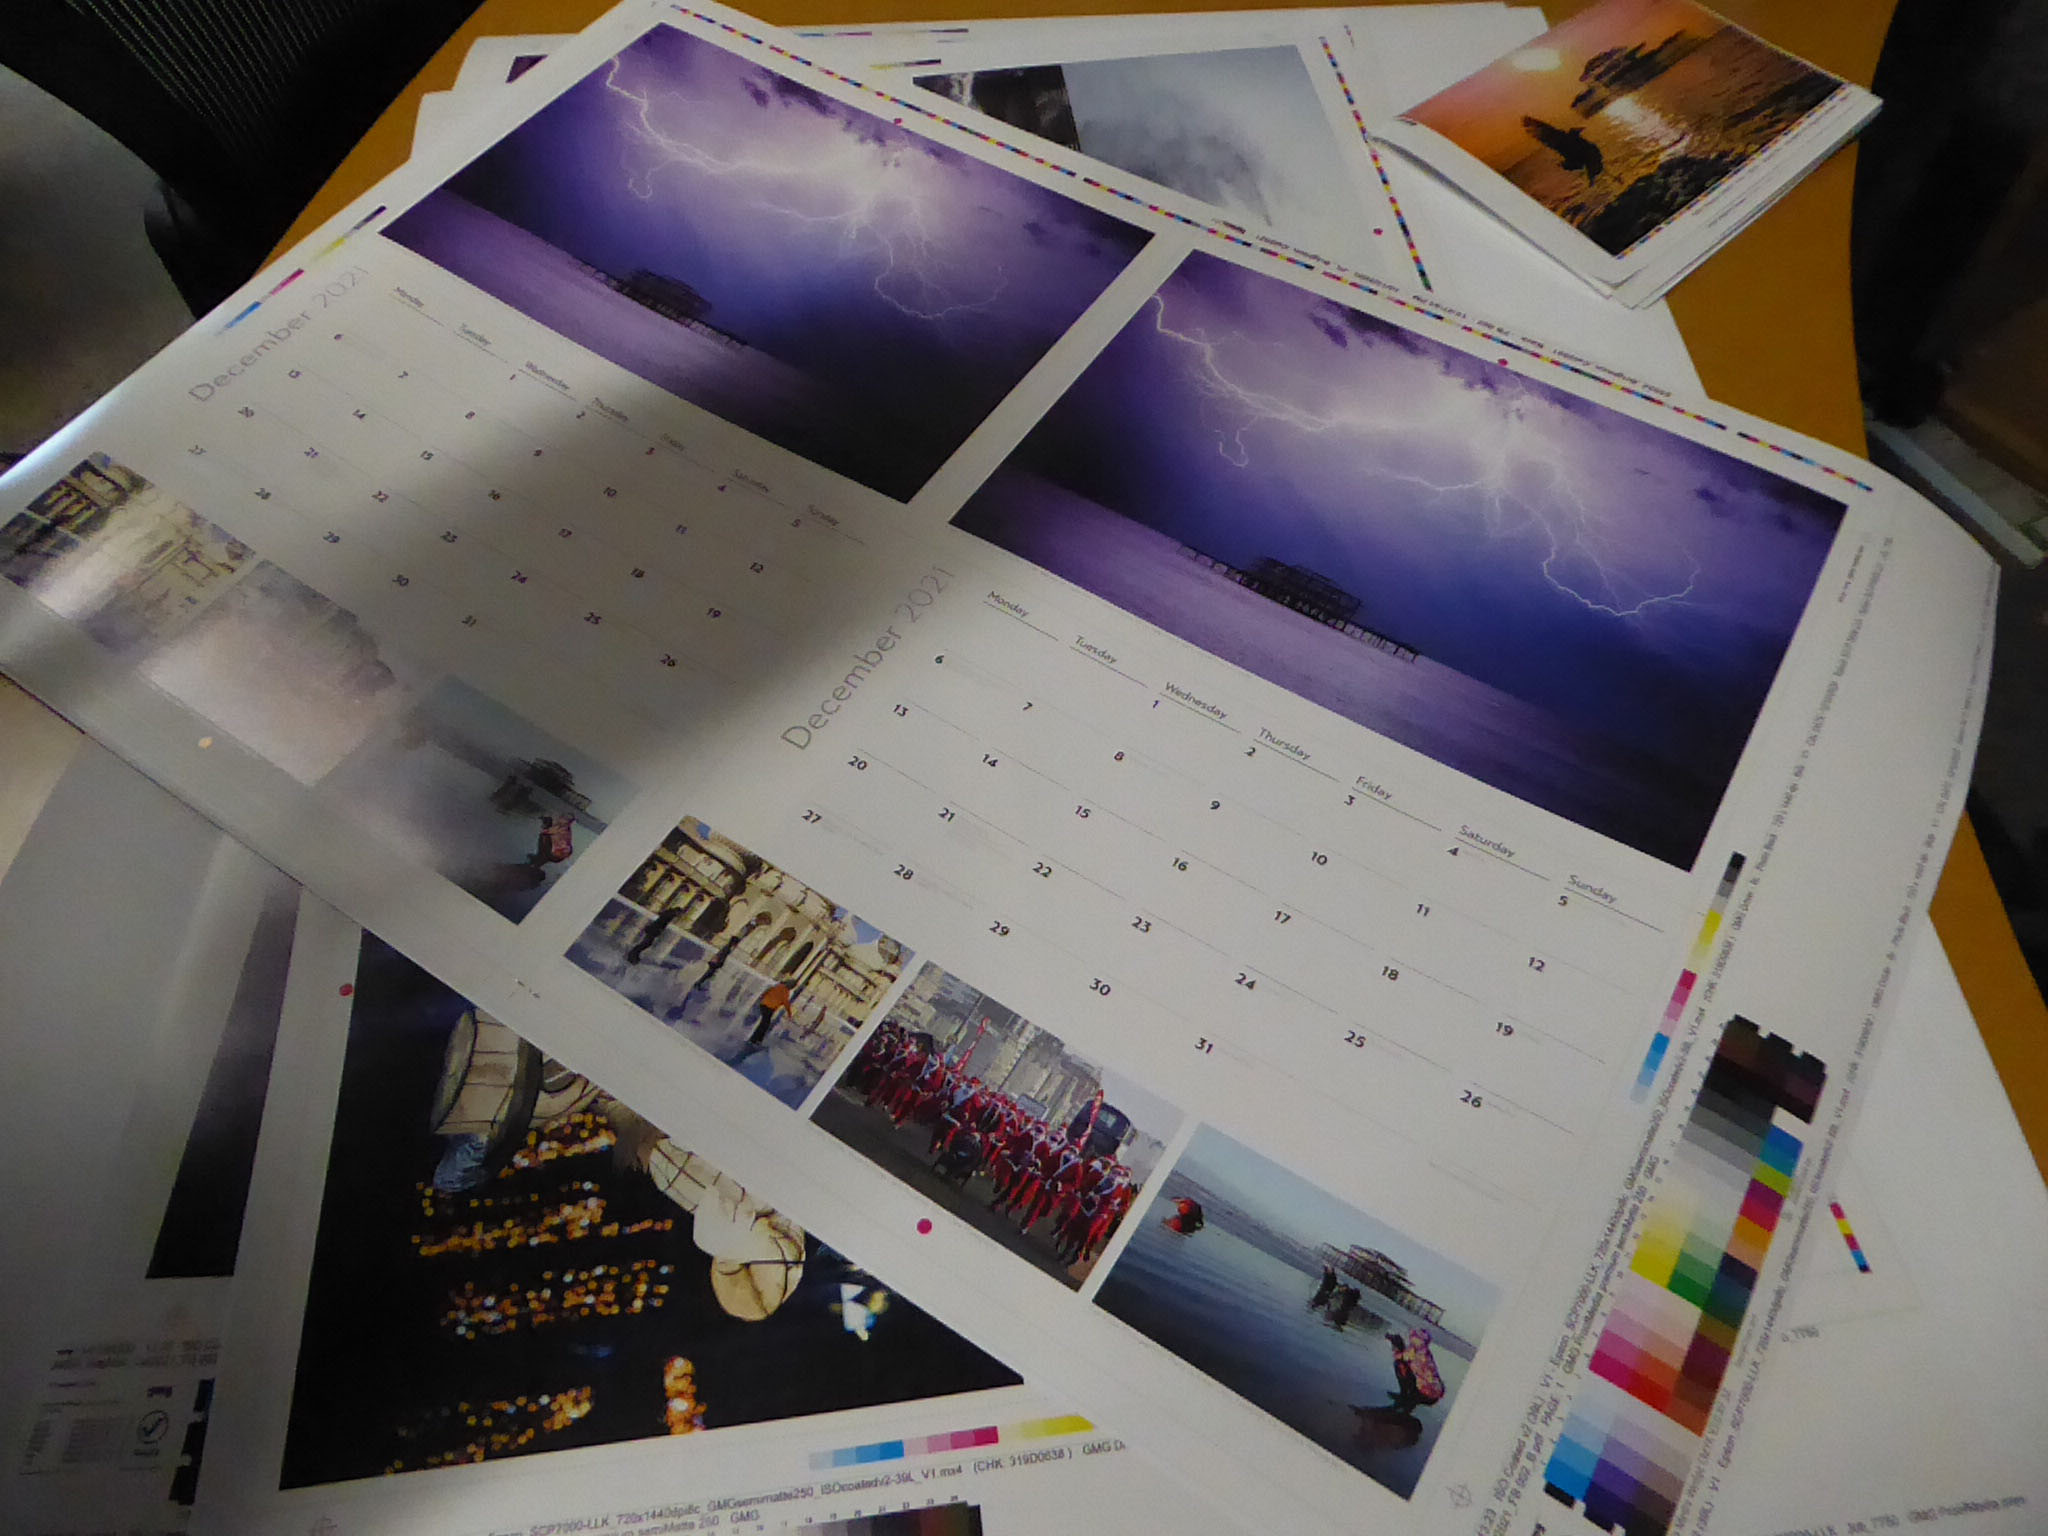 Brighton and Hove Calendar getting printed